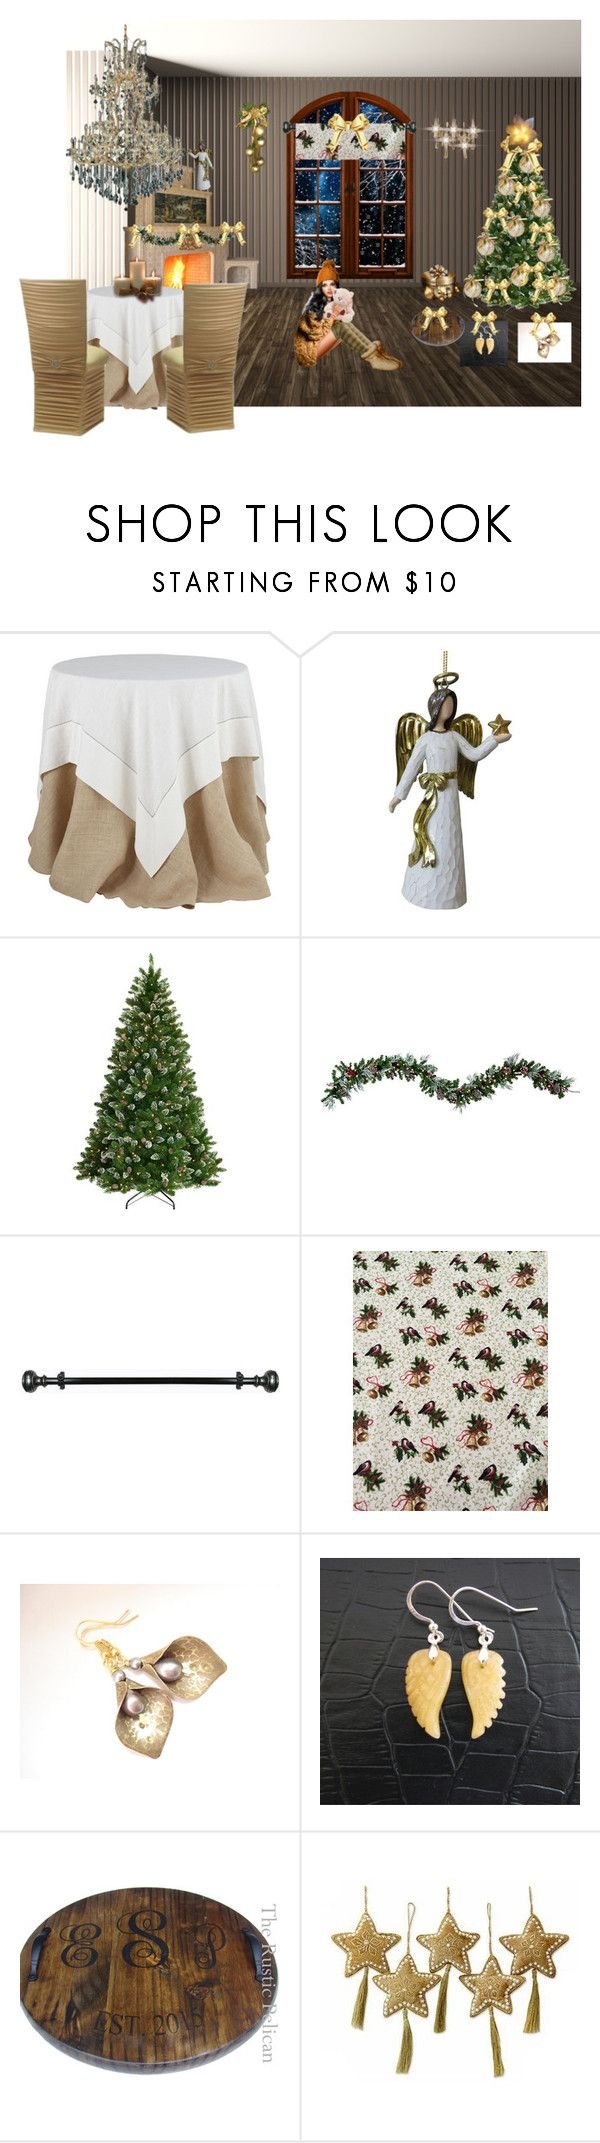 By the warm glow of the fireside by cozeequilts on Polyvore featuring Elegant Lighting, National Tree Company, Improvements, NOVICA, Achim, St. Nicholas Square and rustic